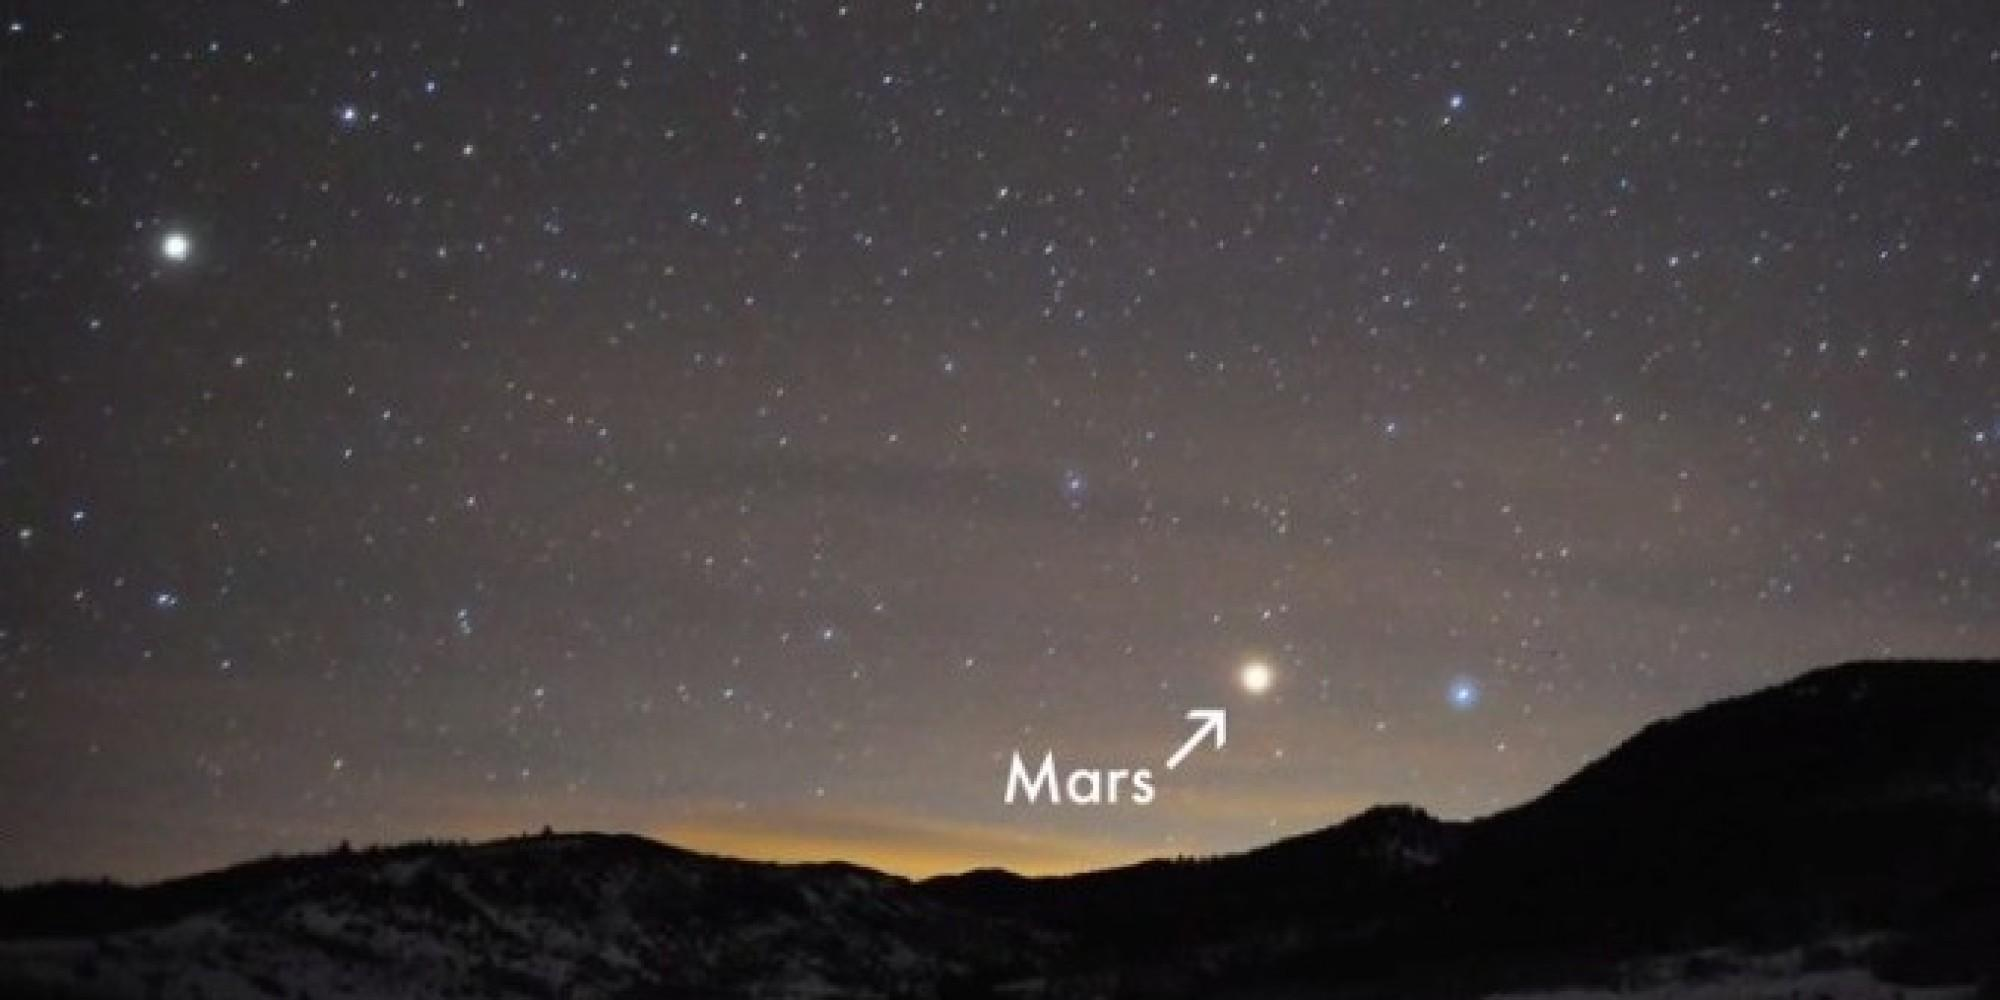 mars can be seen from earth #10